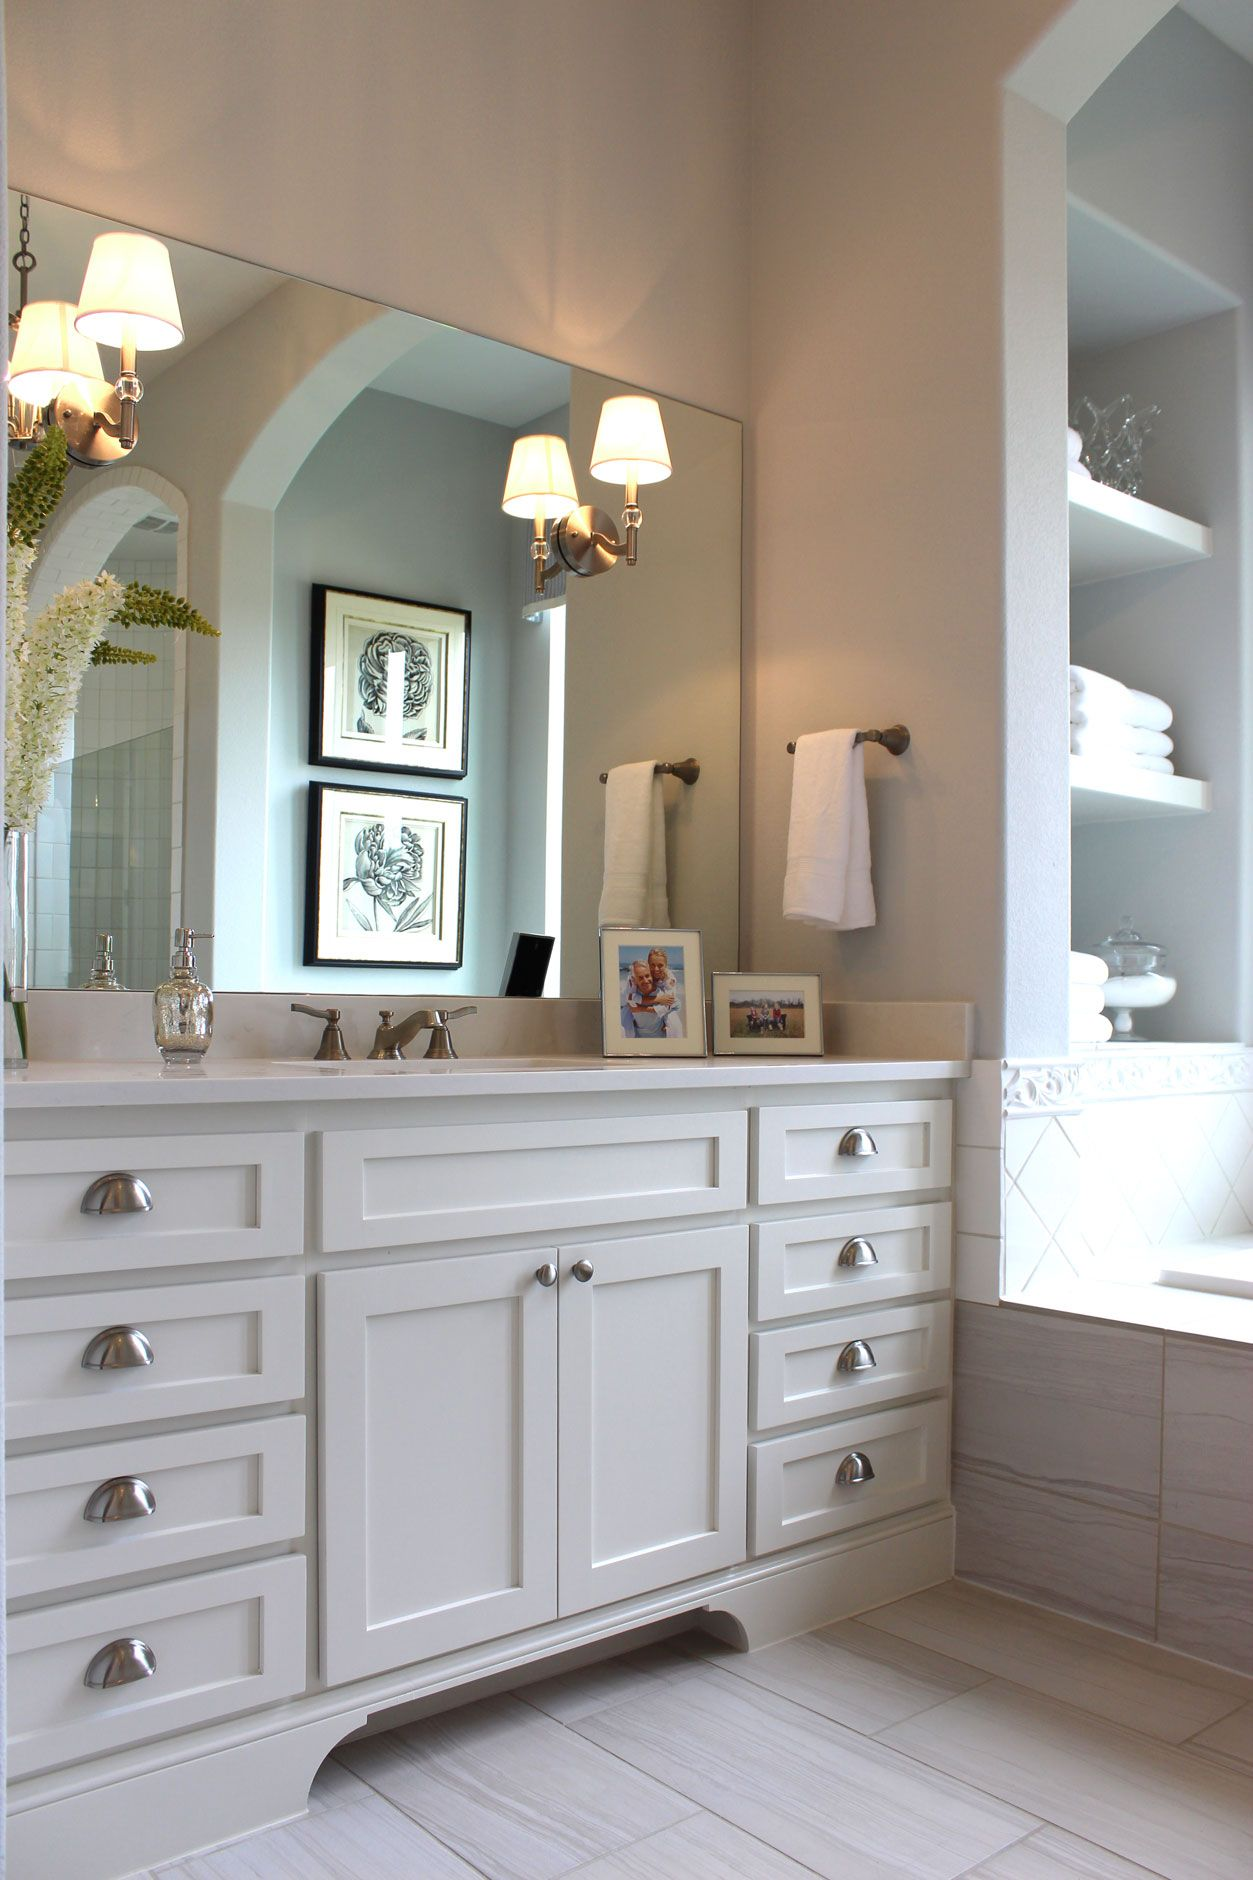 Nice White Shaker Style Master Bath Cabinets By Builder Direct Cabinet Maker  Burrows Cabinets In Austin